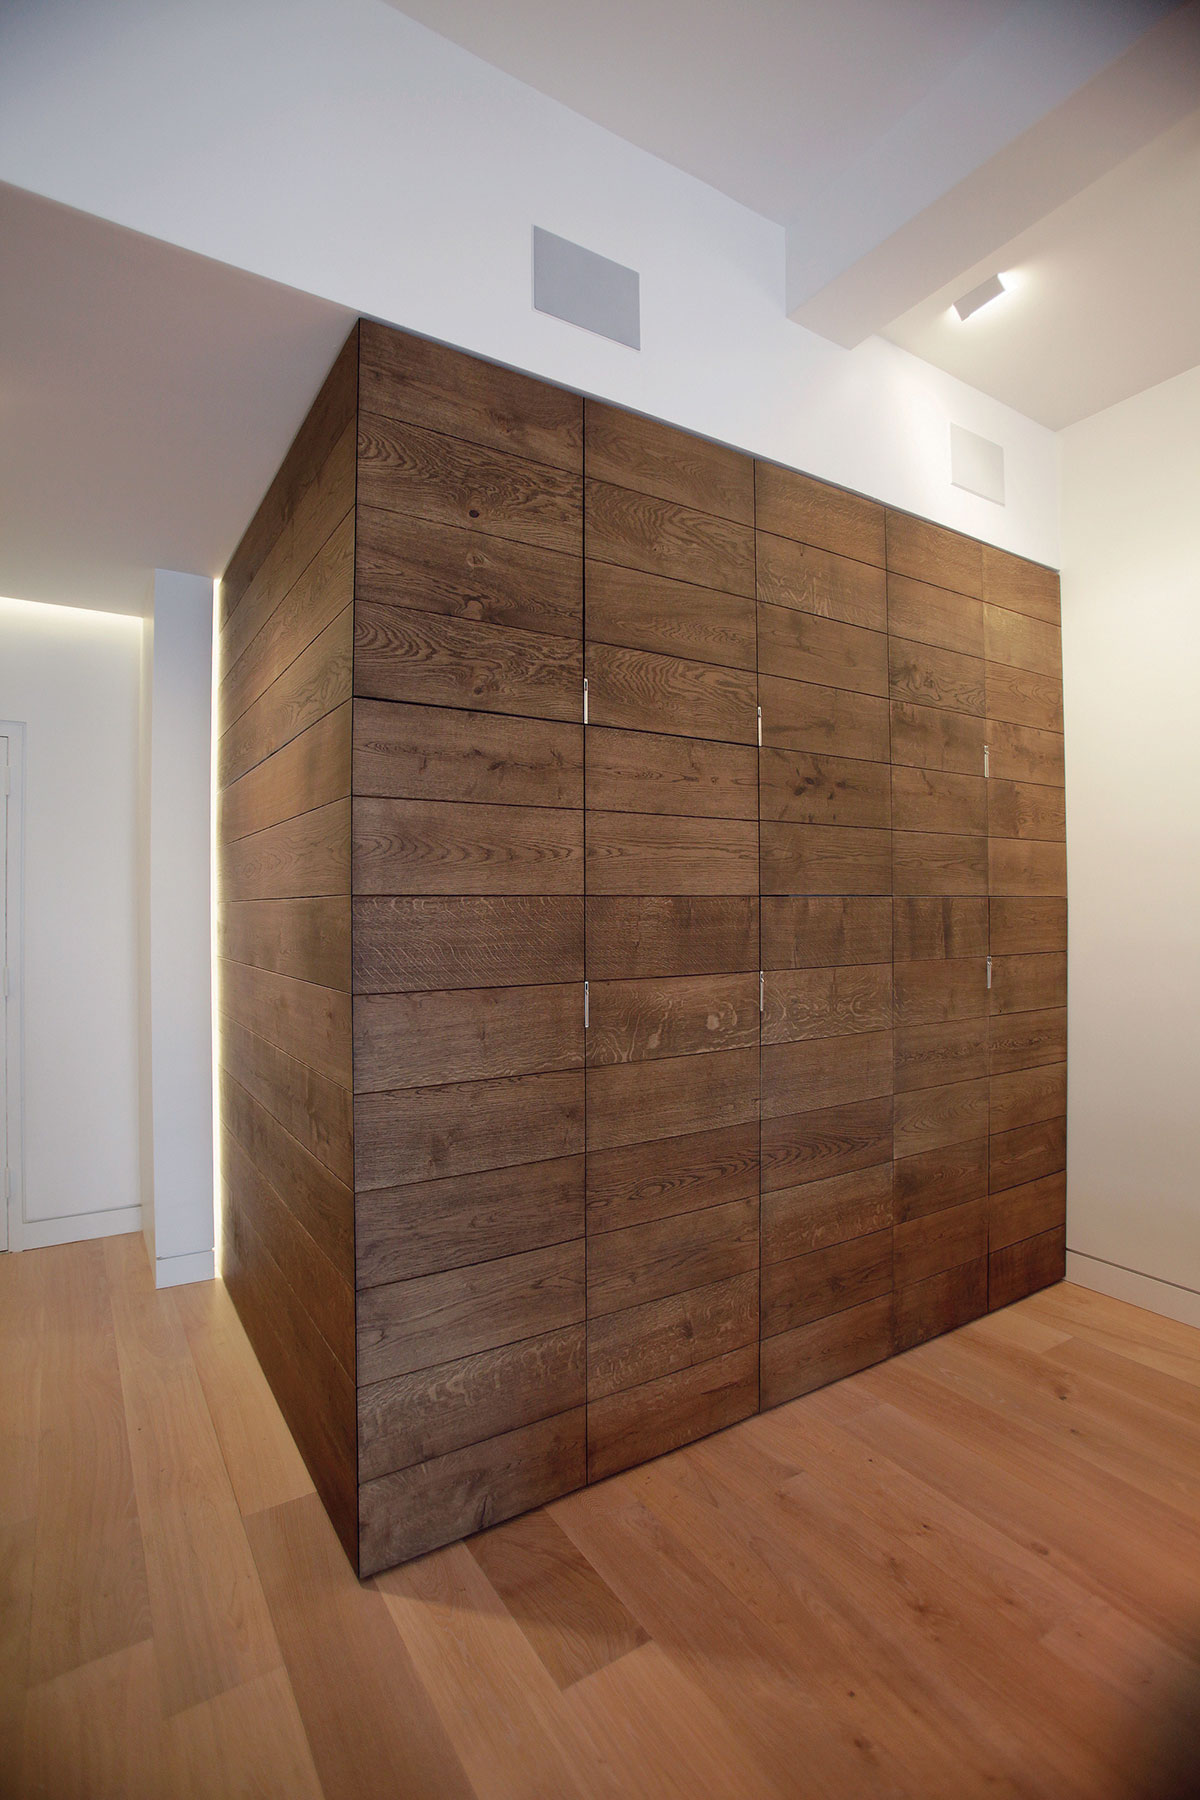 Closet of the residence renovation project in the Chelsea Mews building on the Flatiron District in Manhattan, New York City designed by the architecture studio Danny Forster & Architecture